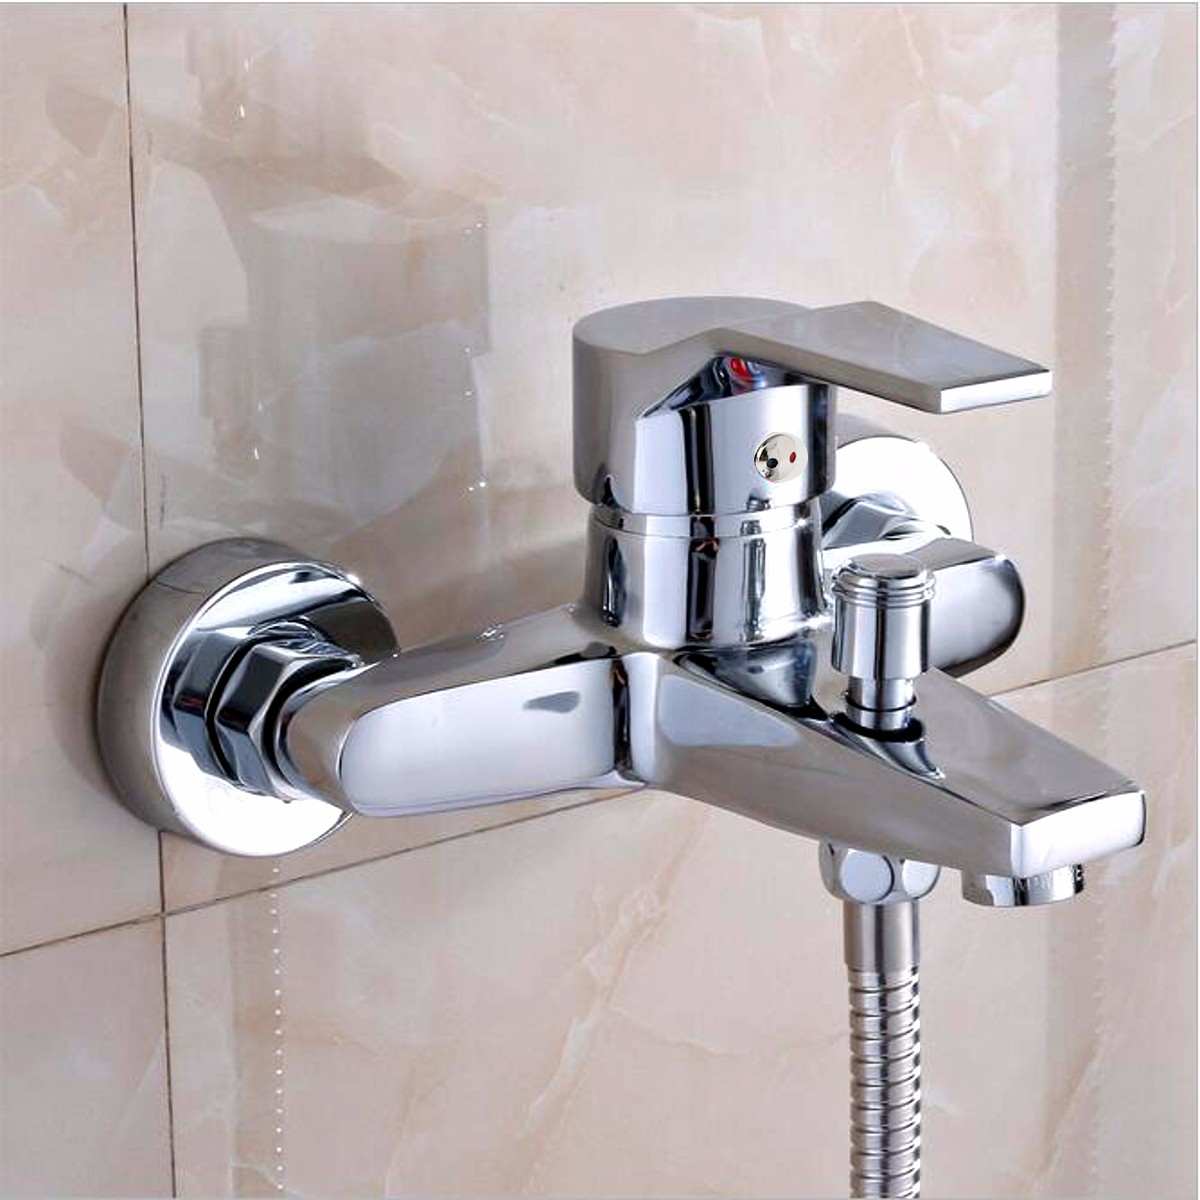 Wall Mounted Bathroom Faucet Bath Tub Mixer Tap Shower Faucet Chrome Finish Thermostatic Shower Mixer Hot/Cold Water